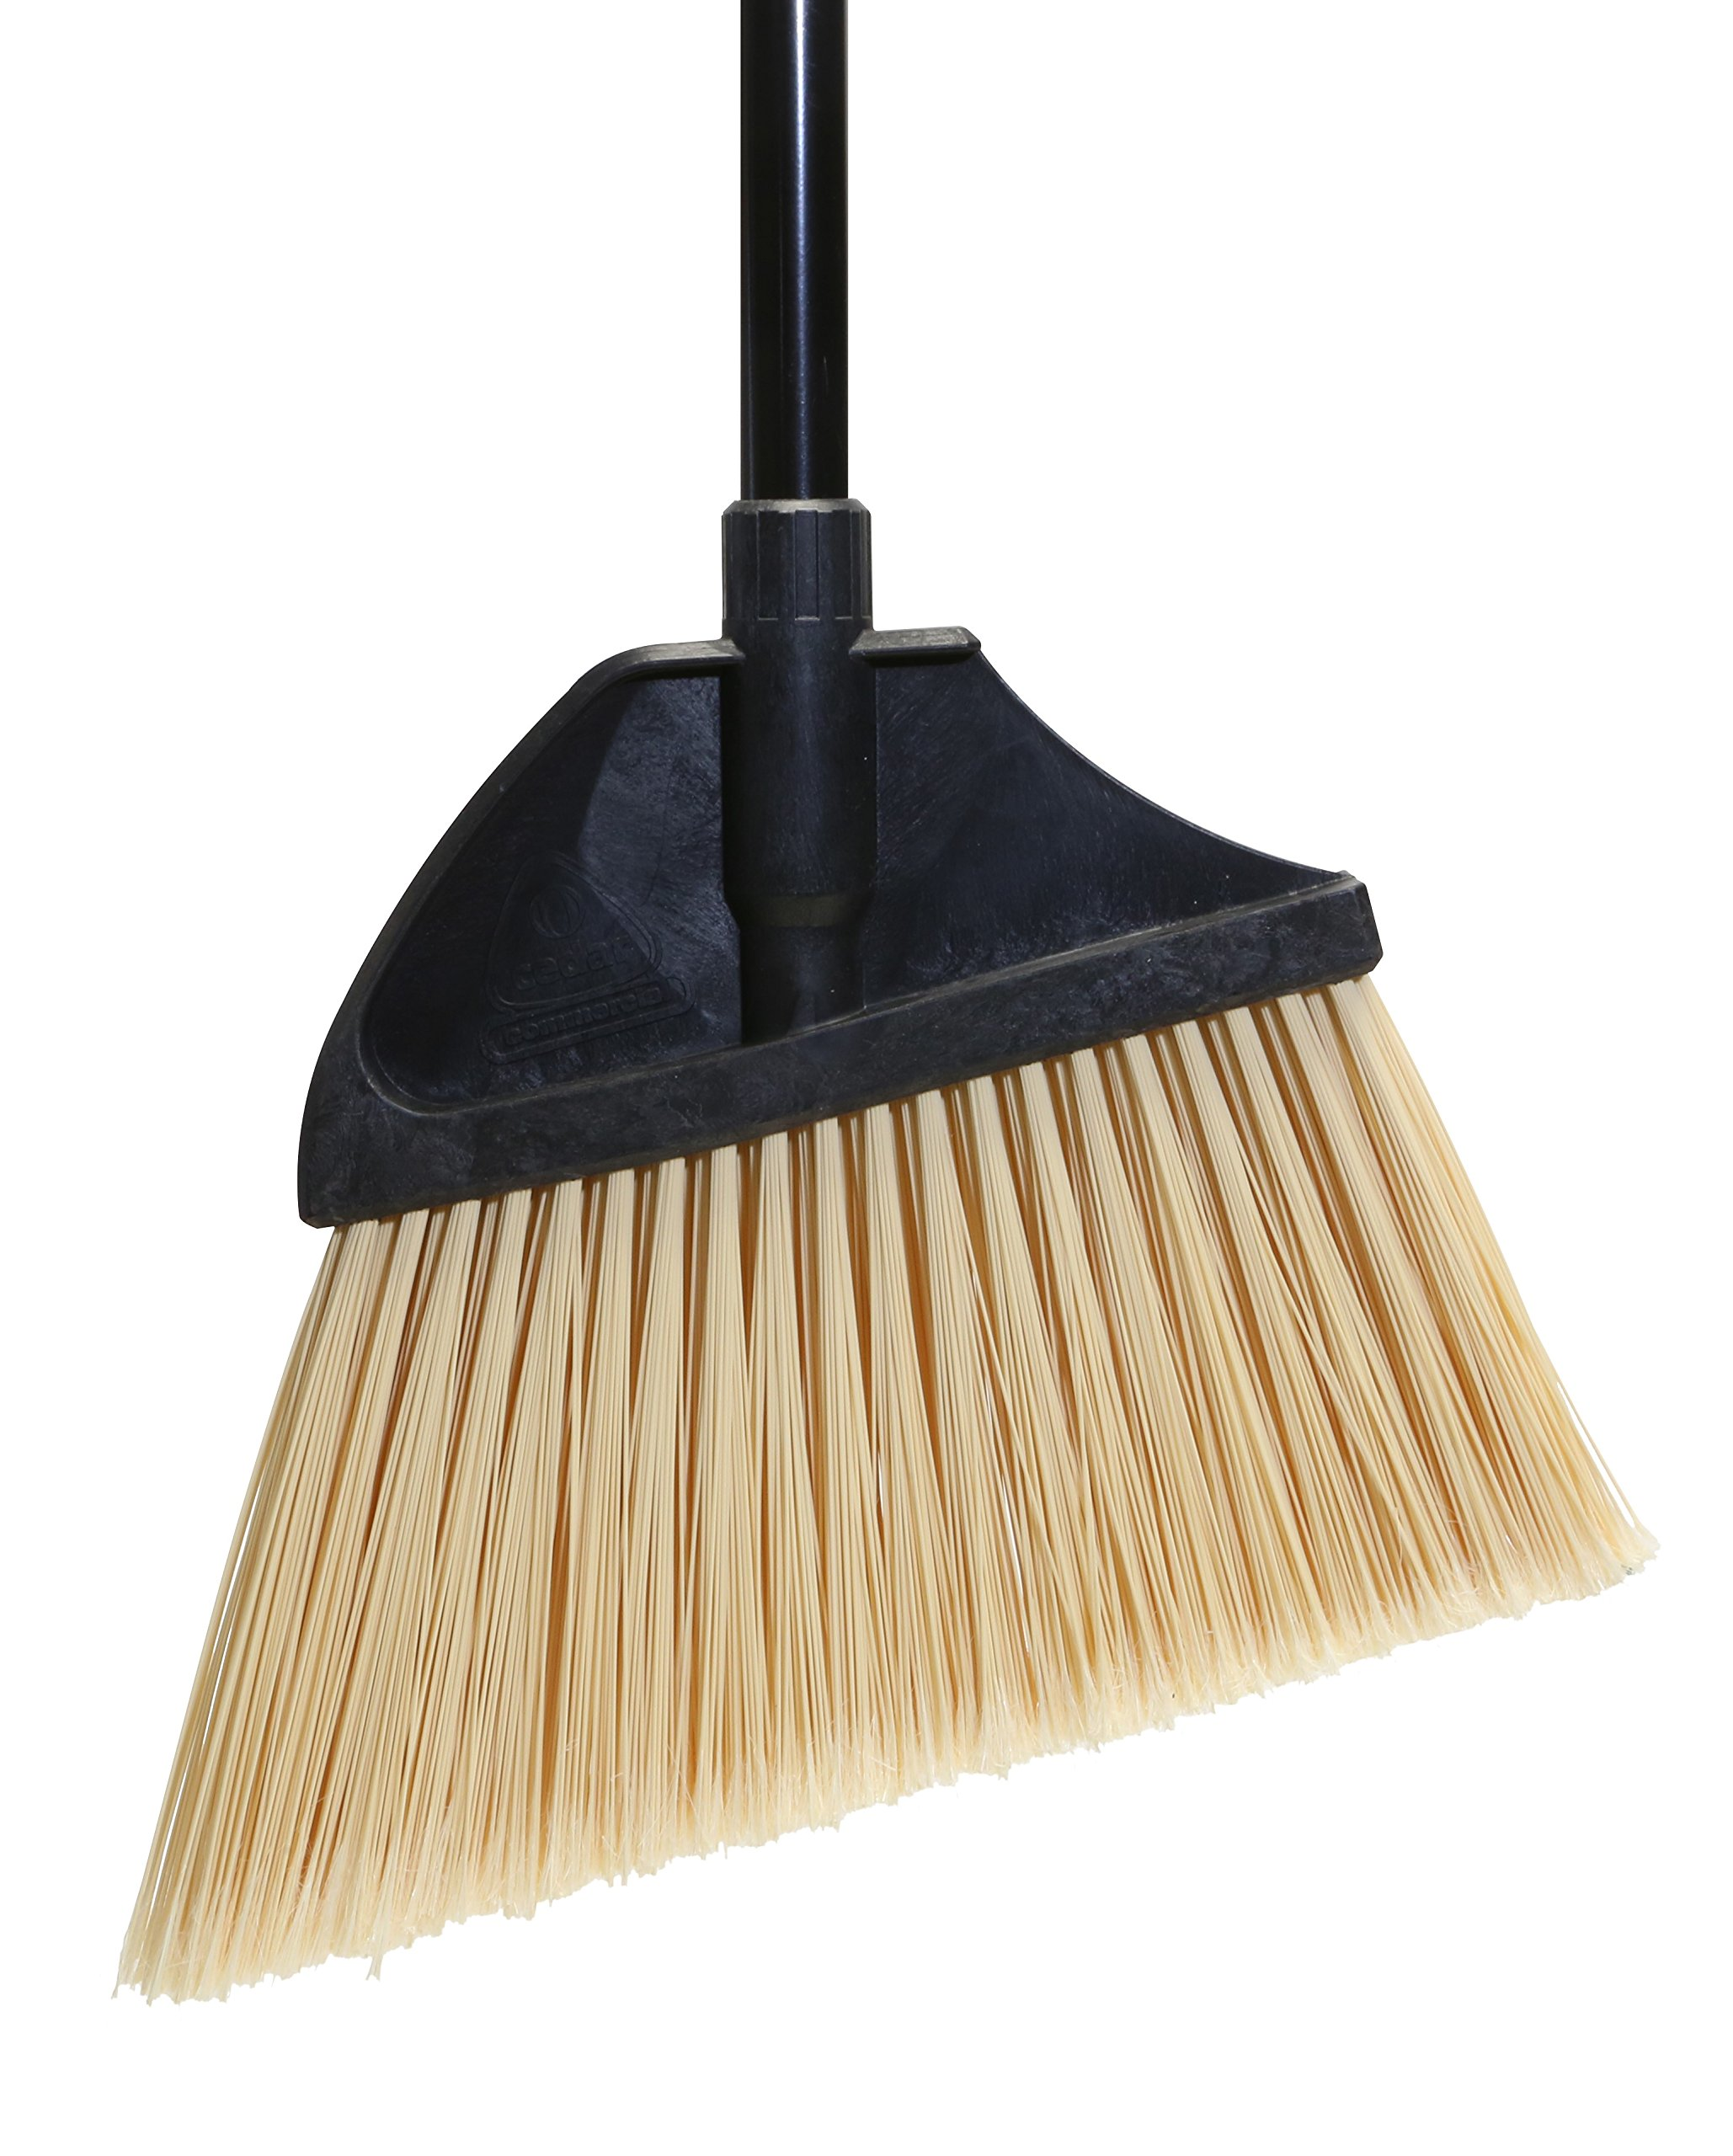 O'Cedar Commercial 91351-12 MaxiPlus Professional Angle Broom, Flagged (Pack of 12)